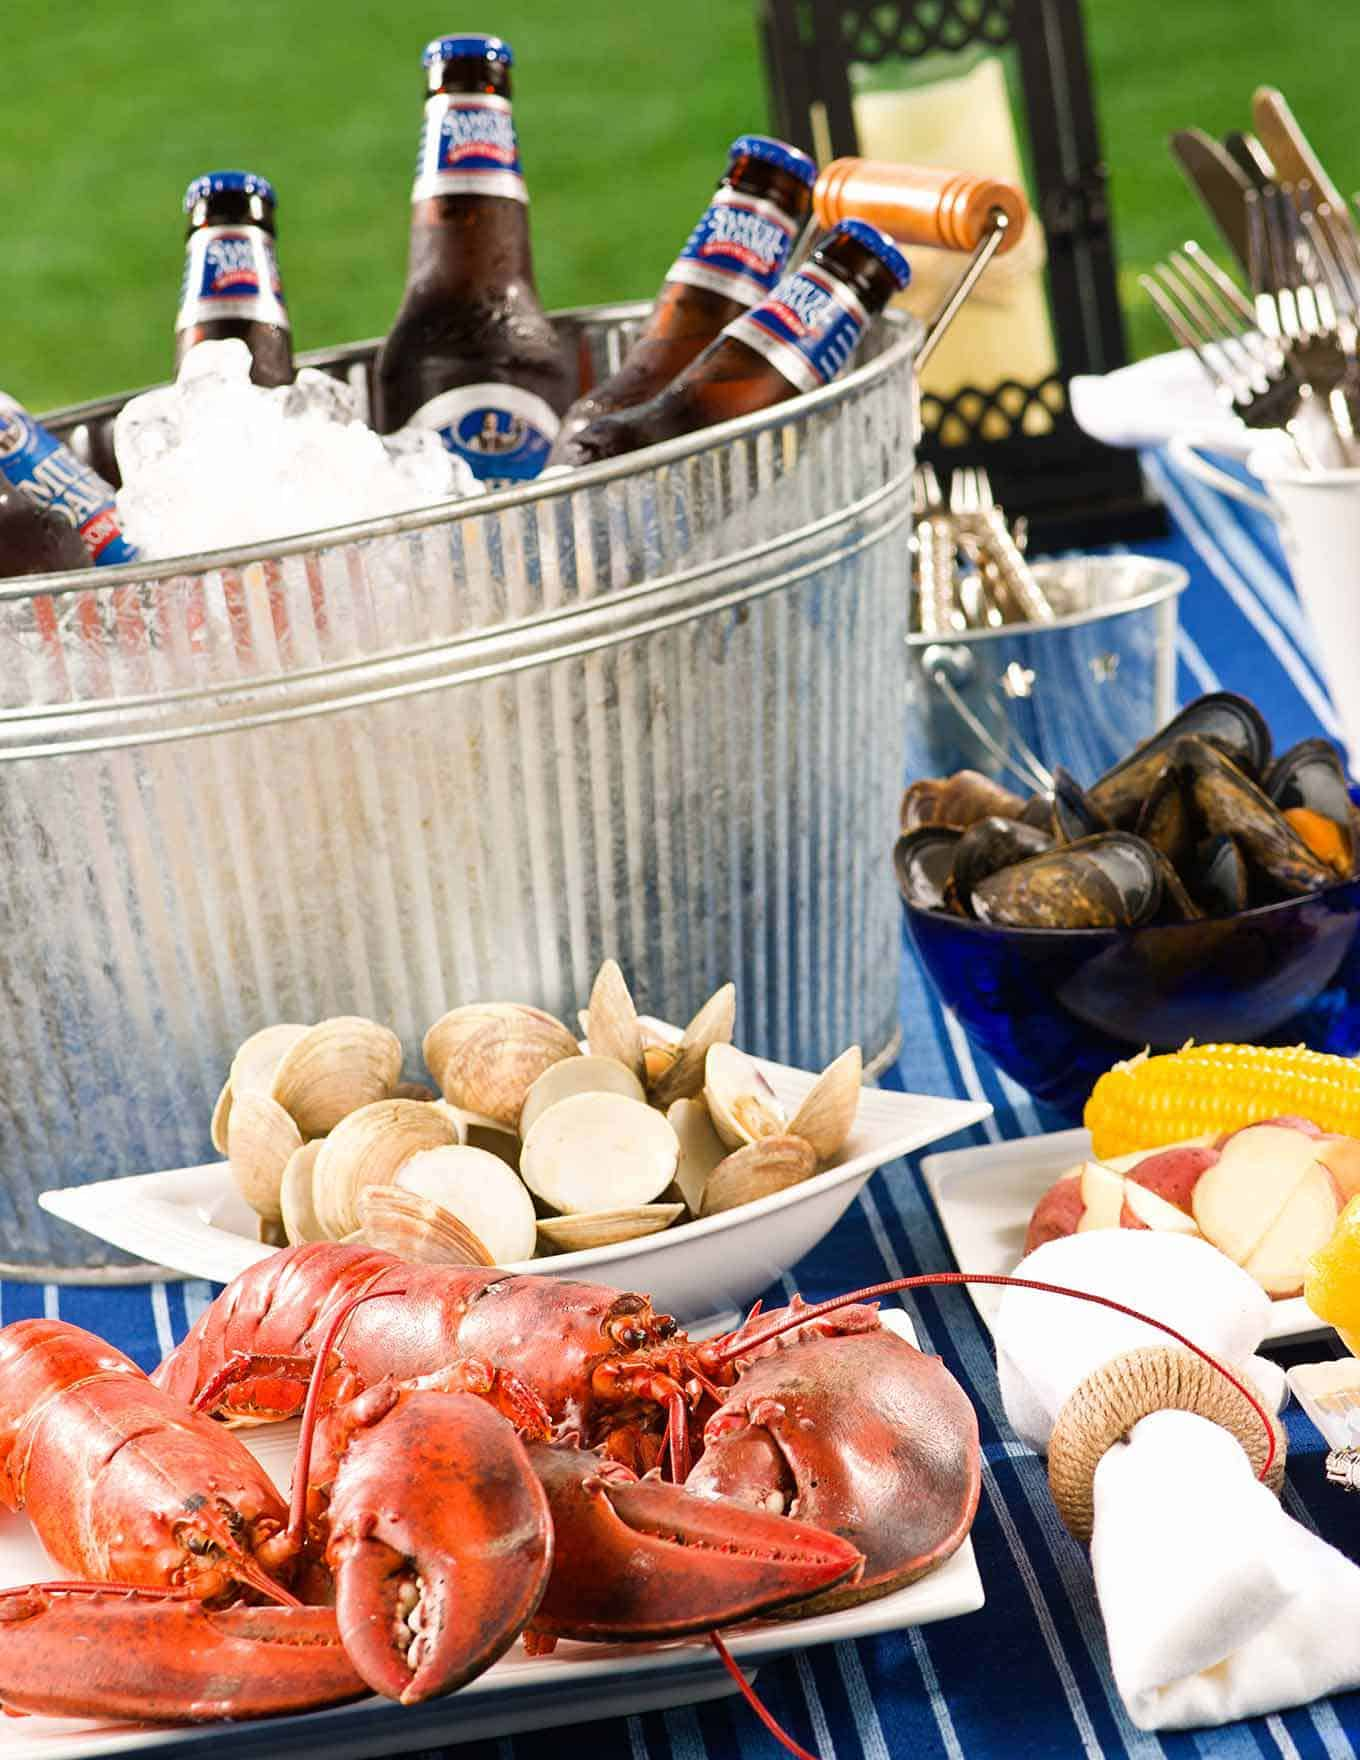 Table filled with with lobsters, clams, mussels, potatoes, corn, utensils, and an ice-filled bucket with cold bottles of beer.